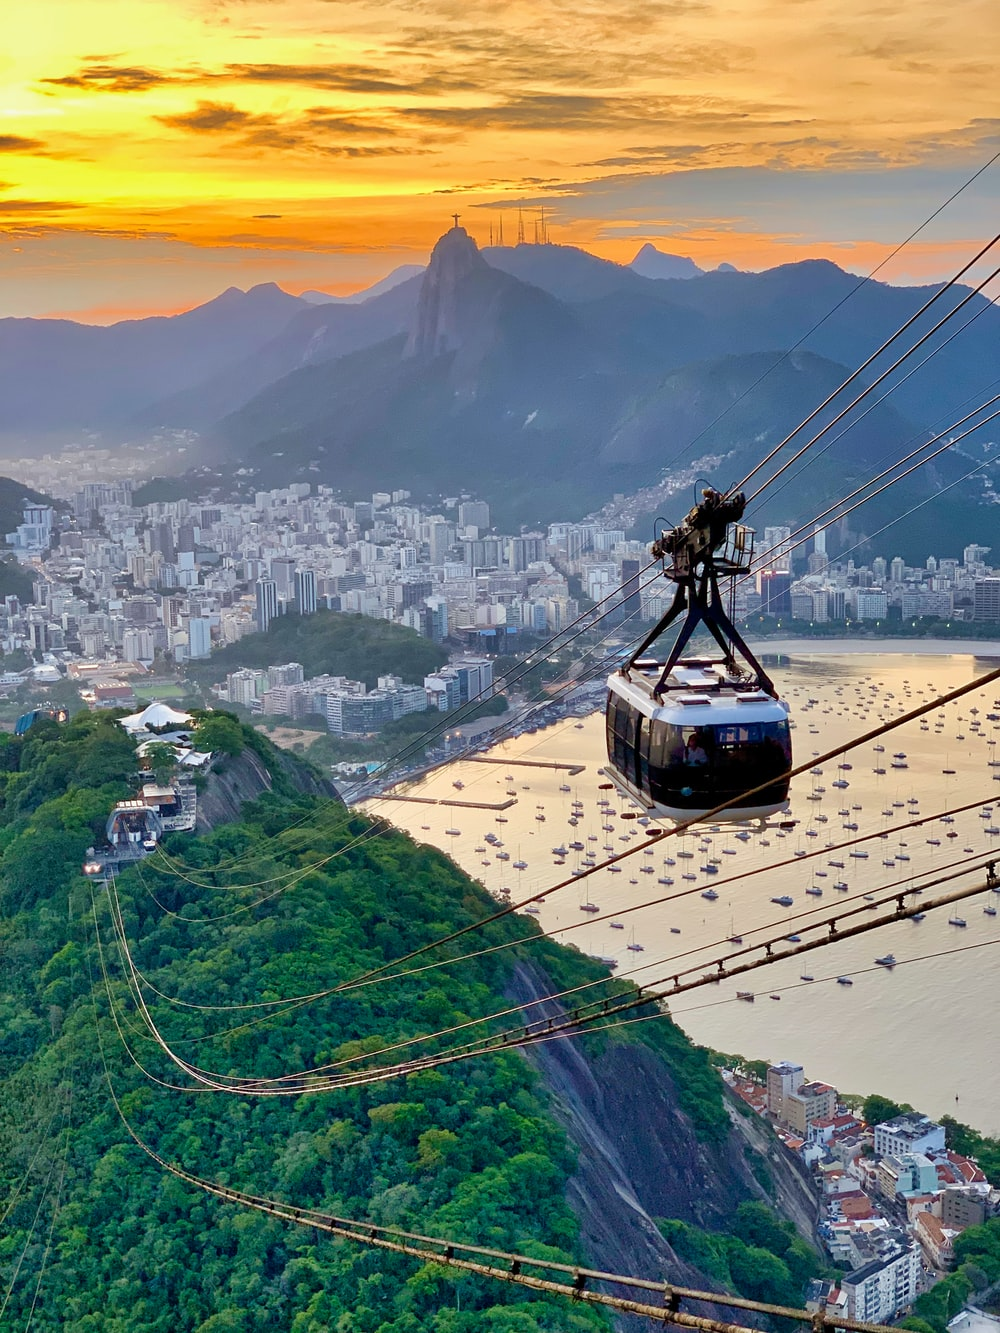 white cable car traversing on top of hills overlooking city by bay